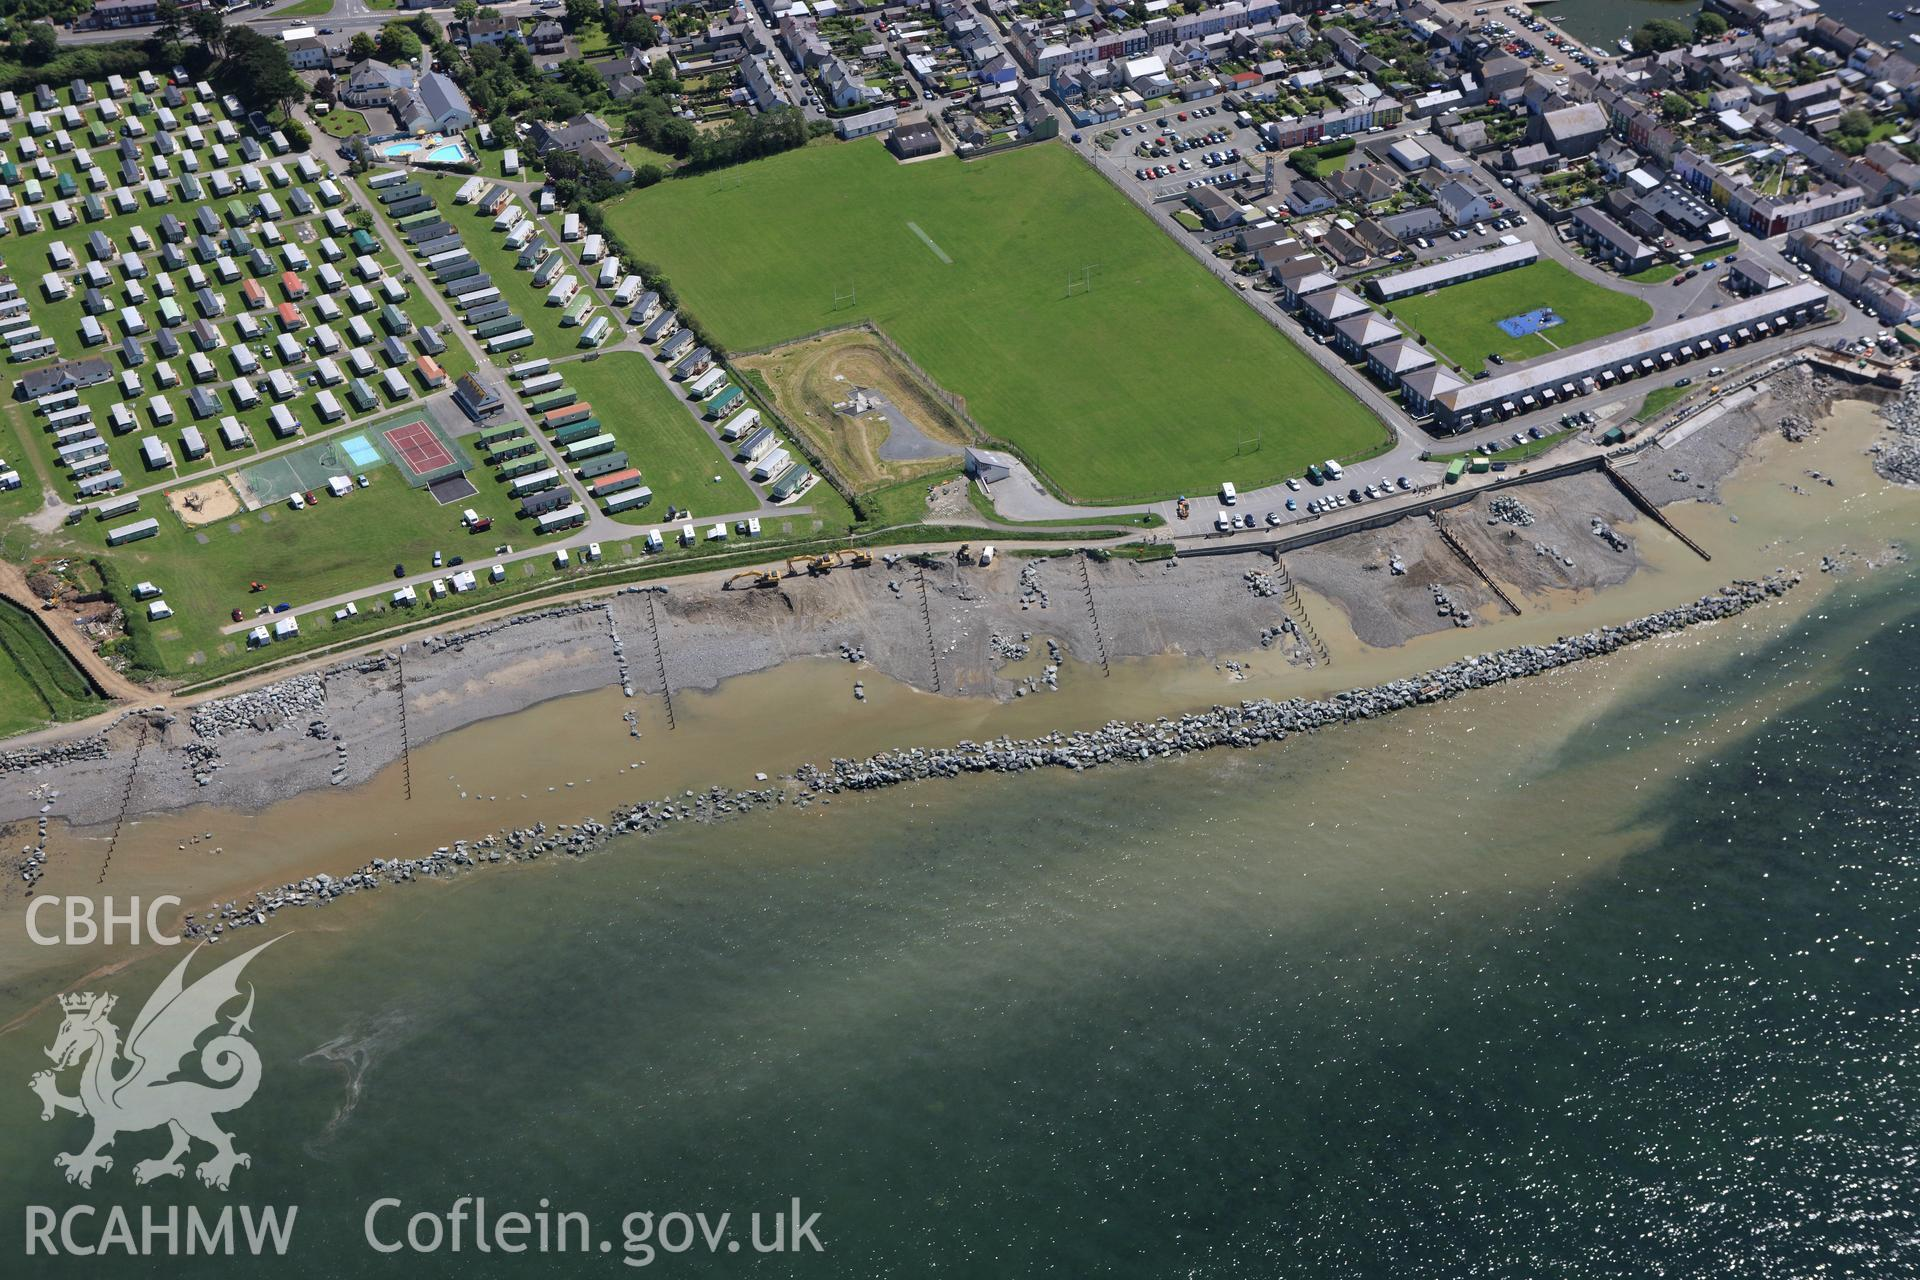 RCAHMW colour oblique aerial photograph of Aberaeron with coastal defence work ongoing. Taken on 01 June 2009 by Toby Driver